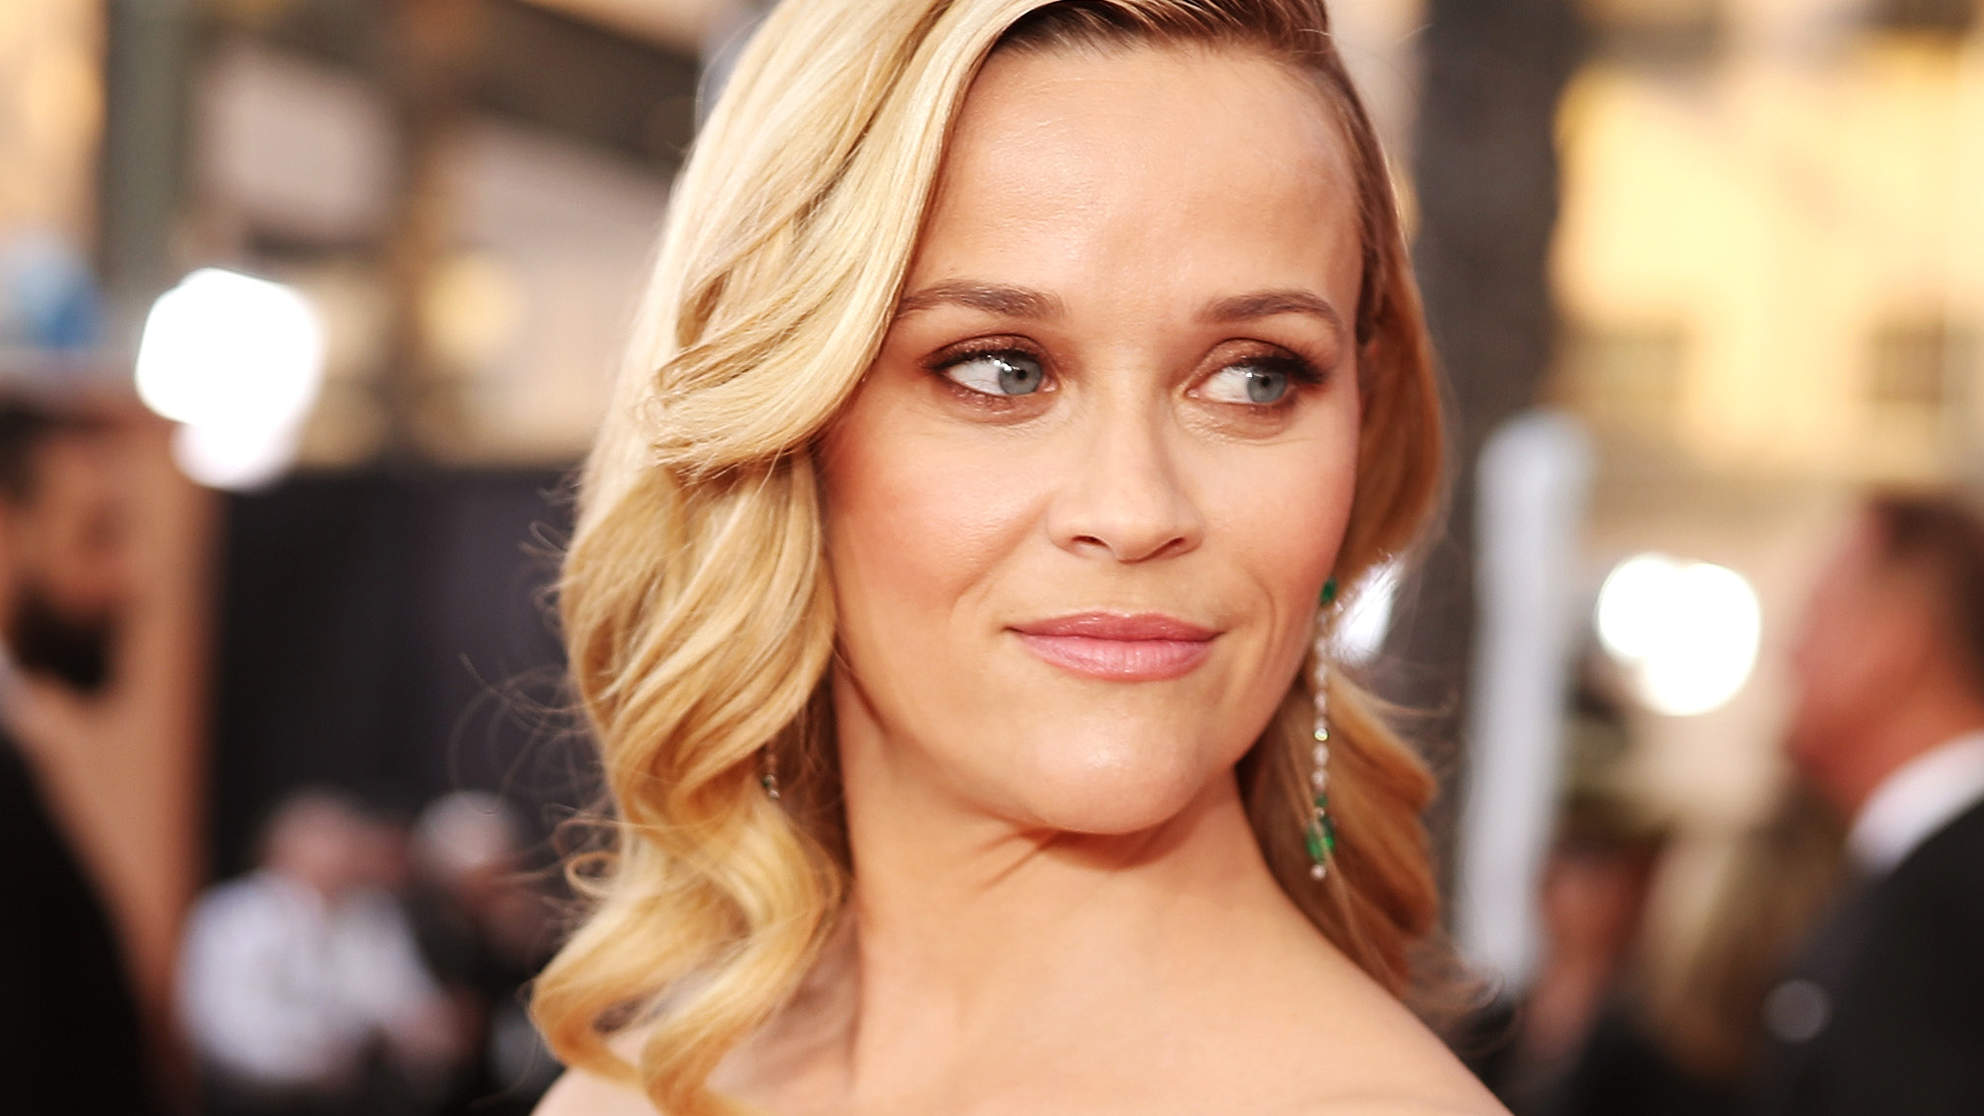 What It Took for Reese Witherspoon to Leave an Abusive Relationship and How She Moved Forward